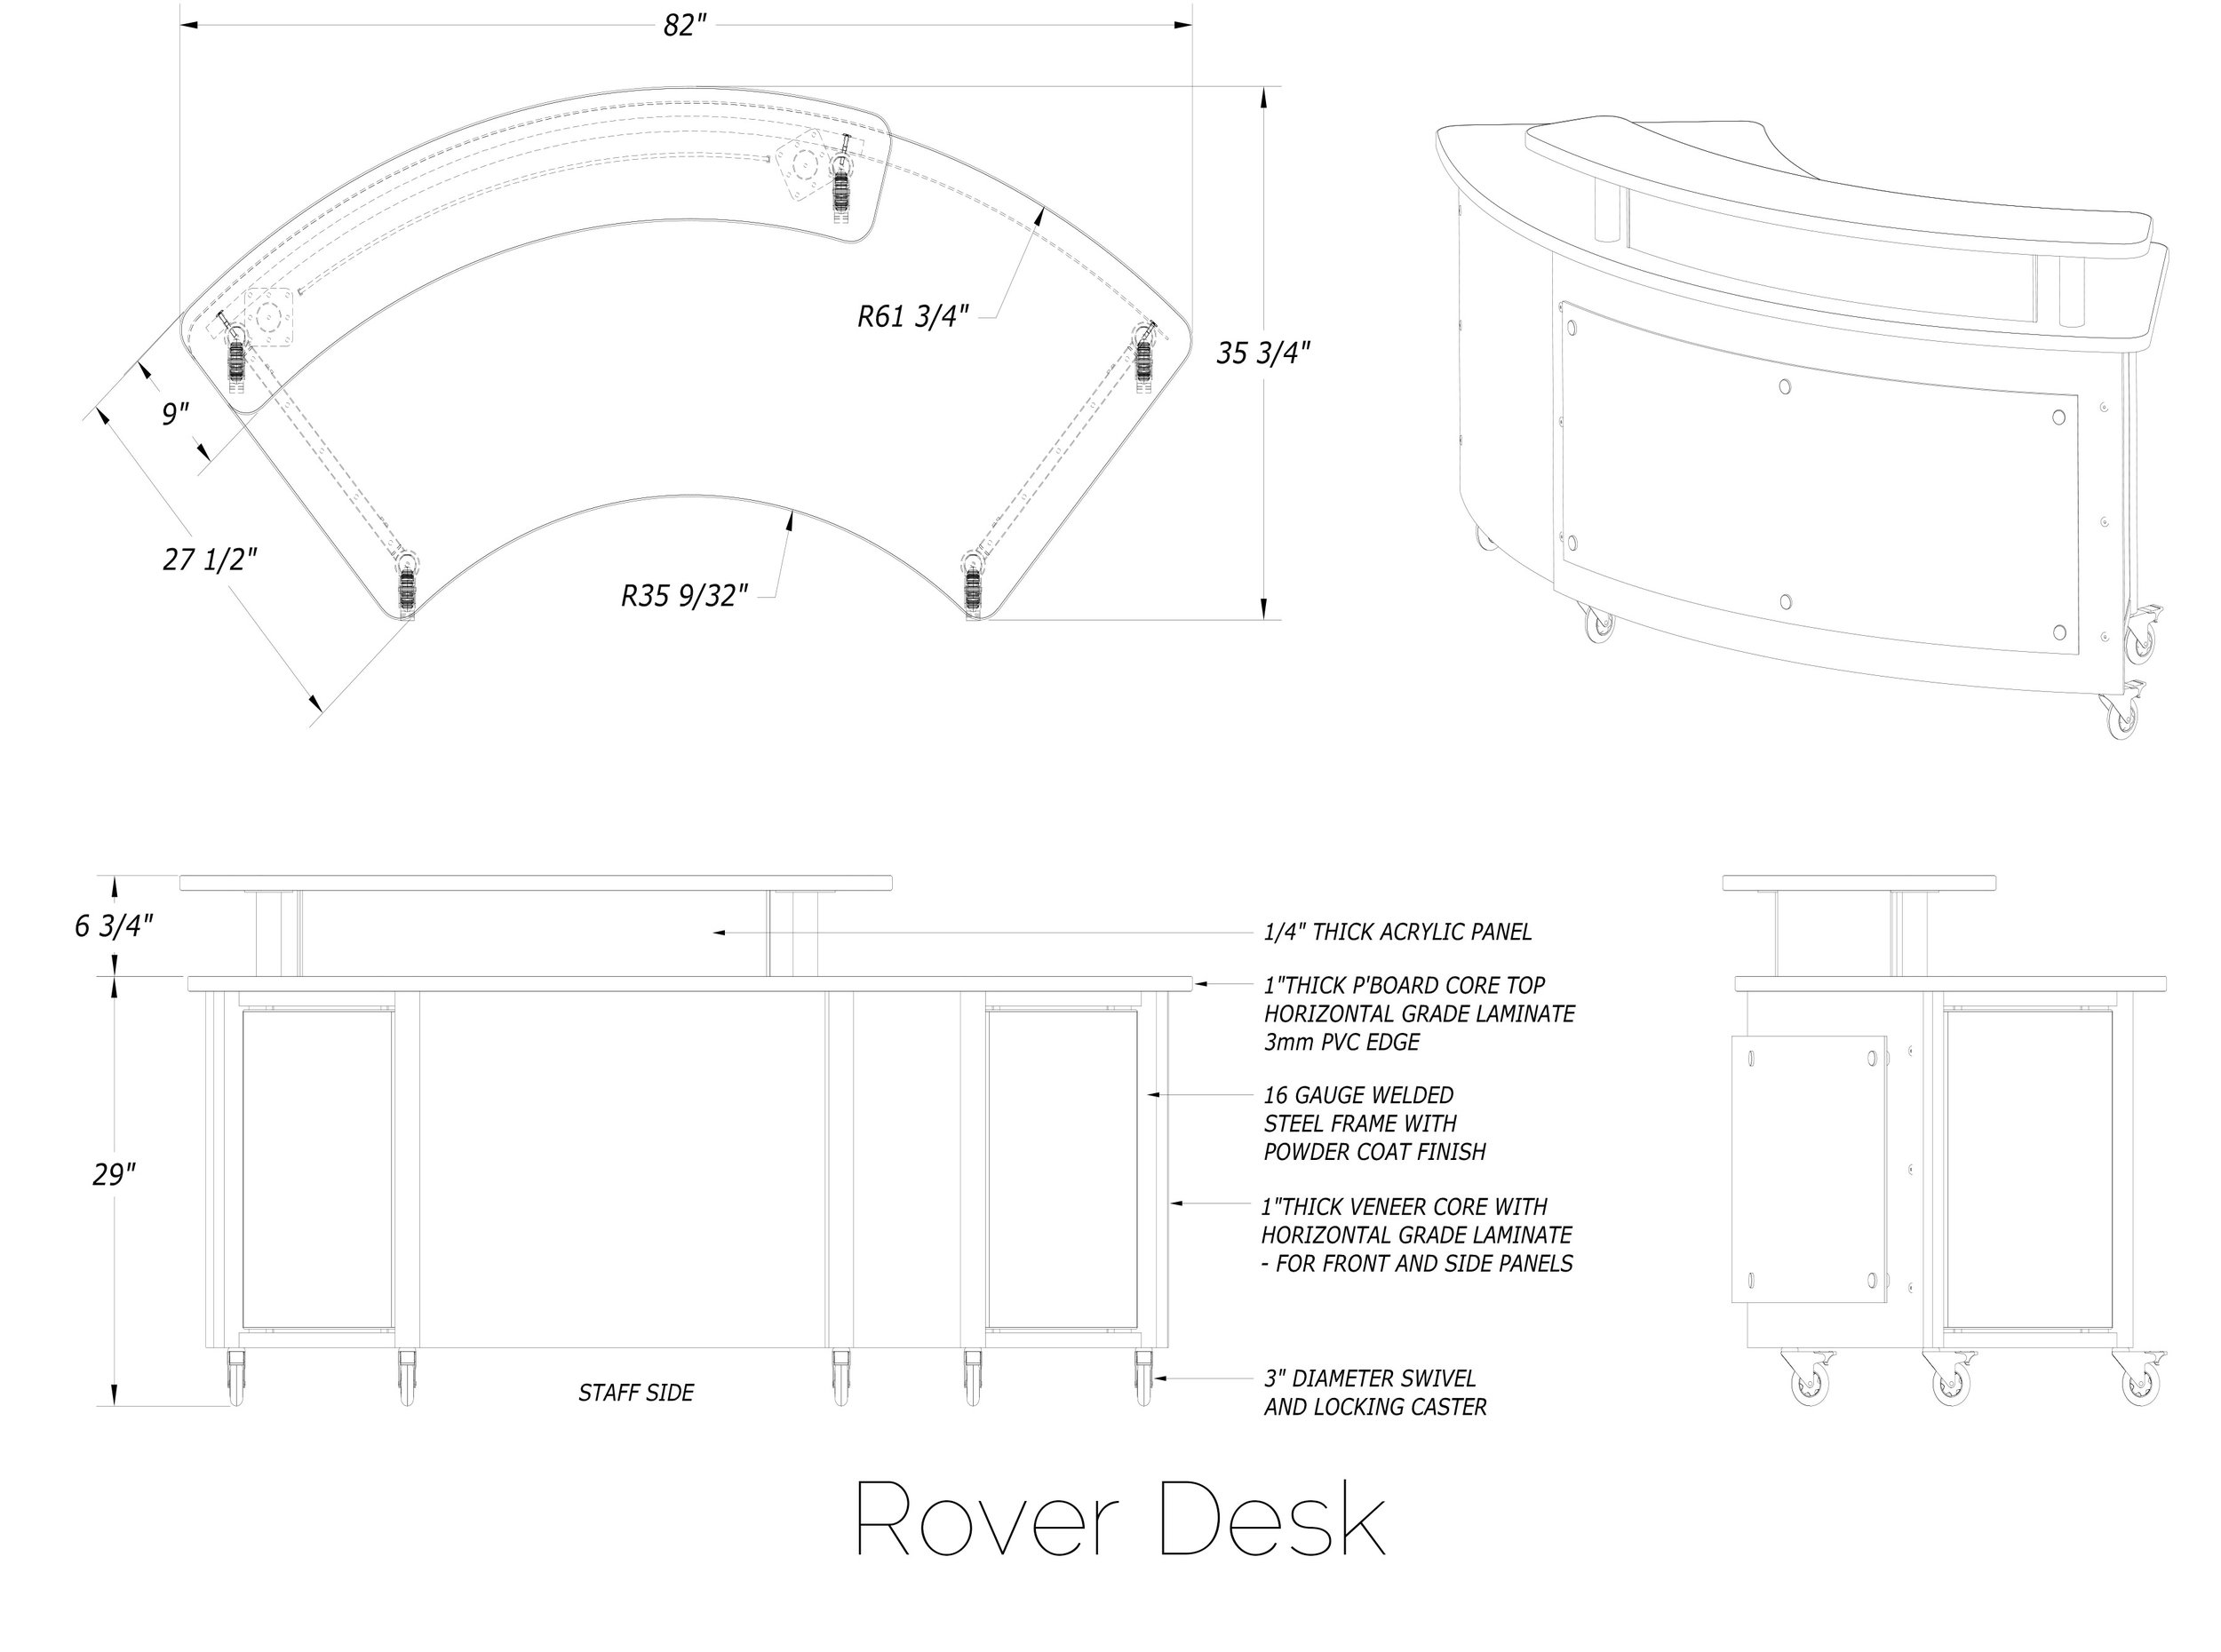 Rover Desk Cover.jpg